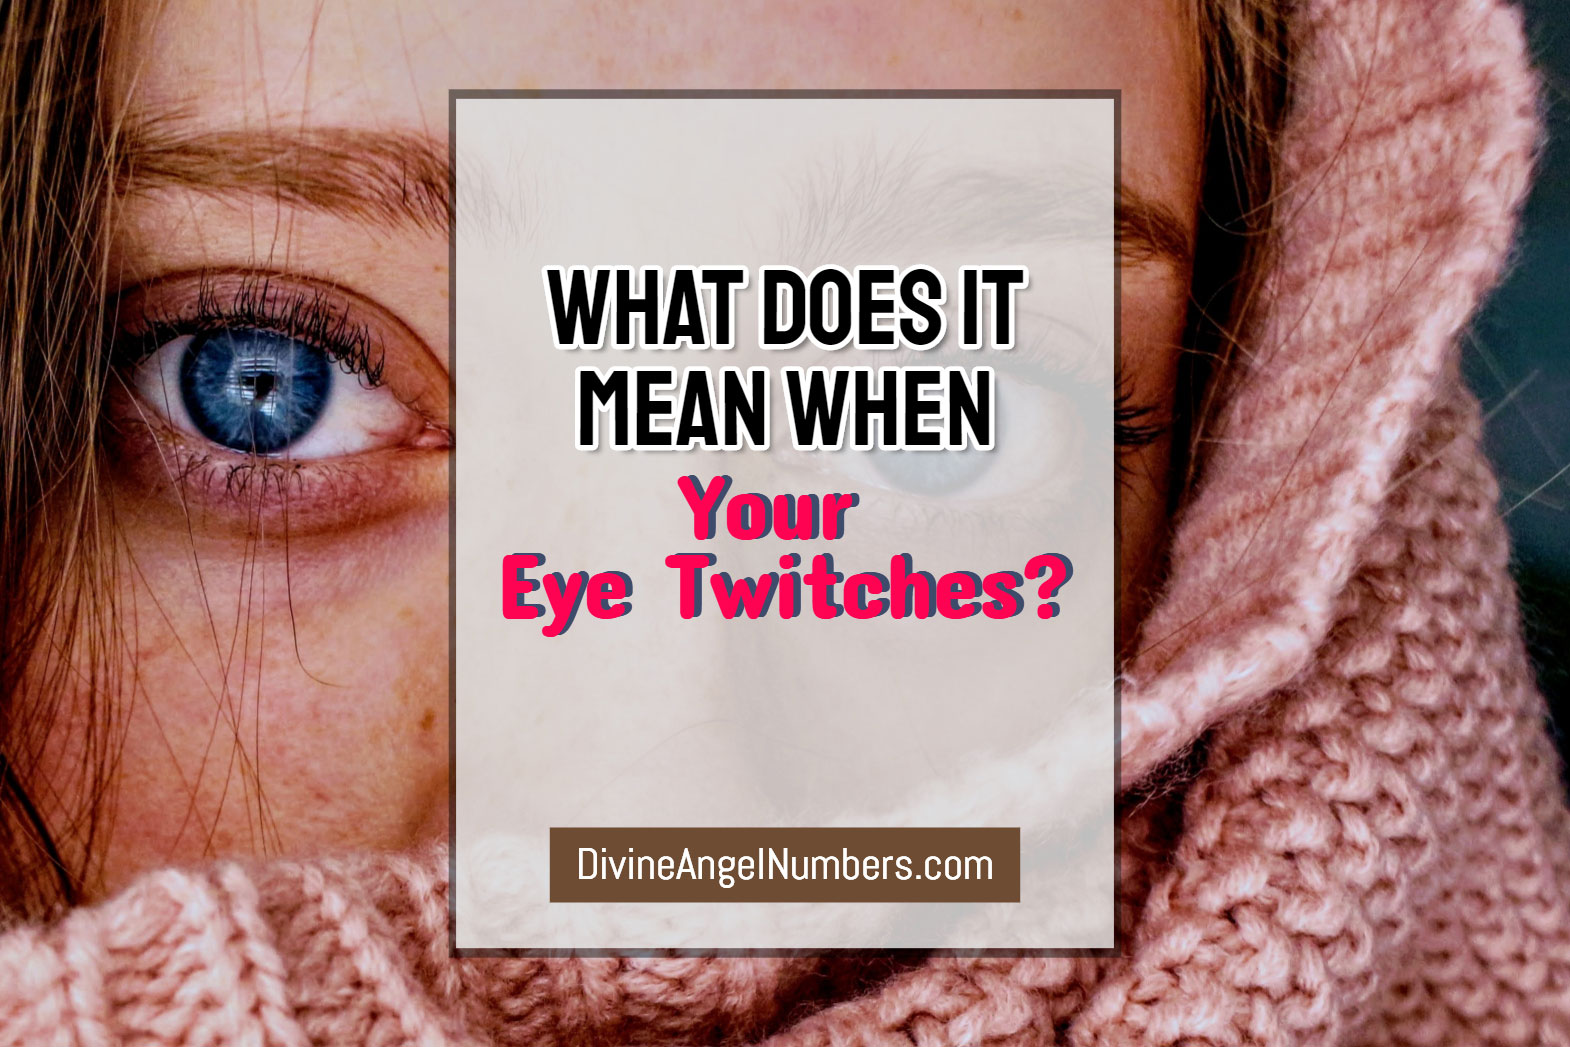 What Does It Mean When Your Eye Twitches?